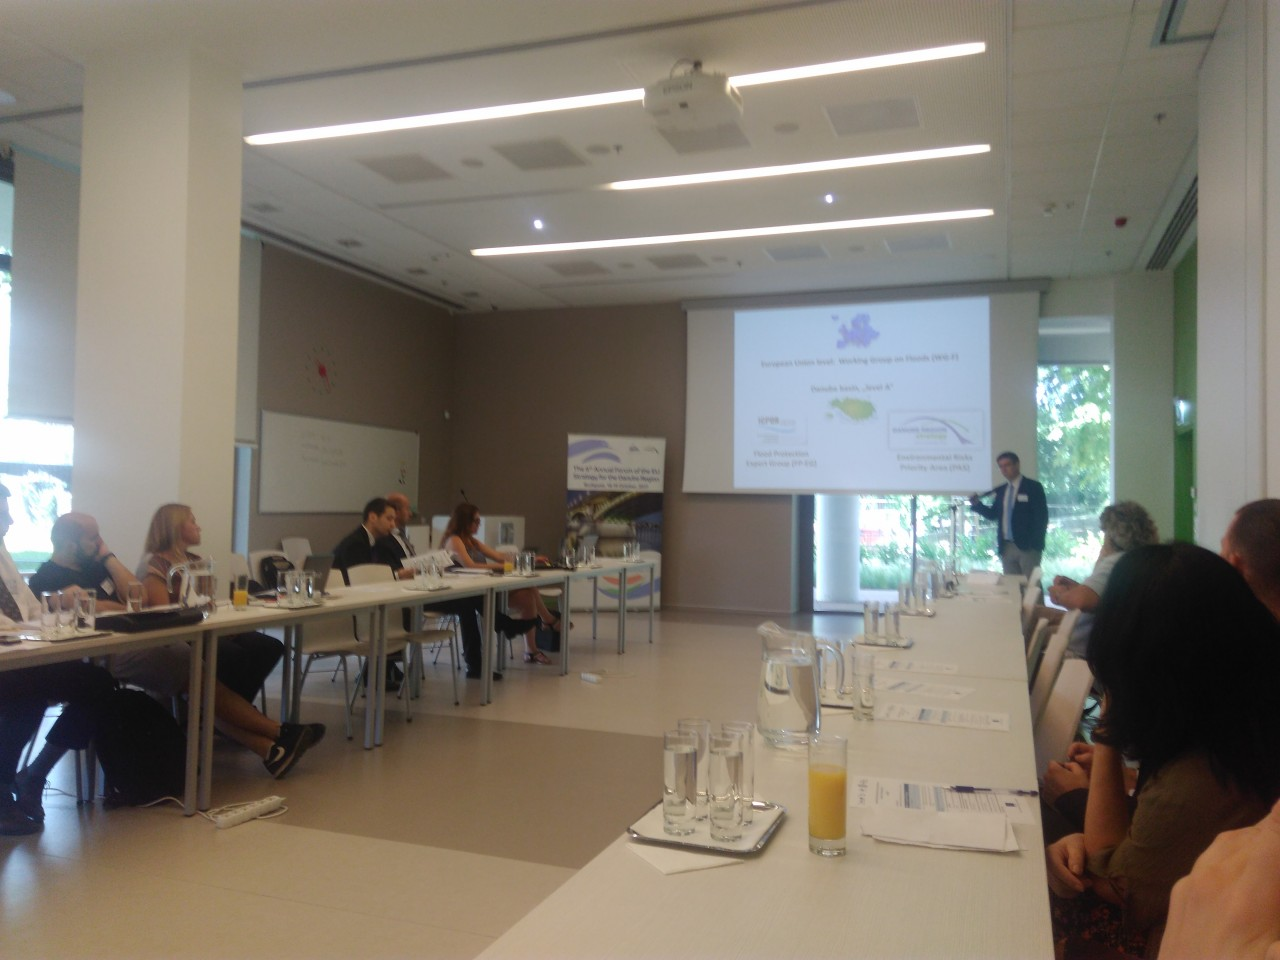 PA7 TOOK PART IN INTERNATIONAL WORKSHOP ON THE DANUBE REGION FLOOD PROTECTION EDUCATION, 29.6.2017